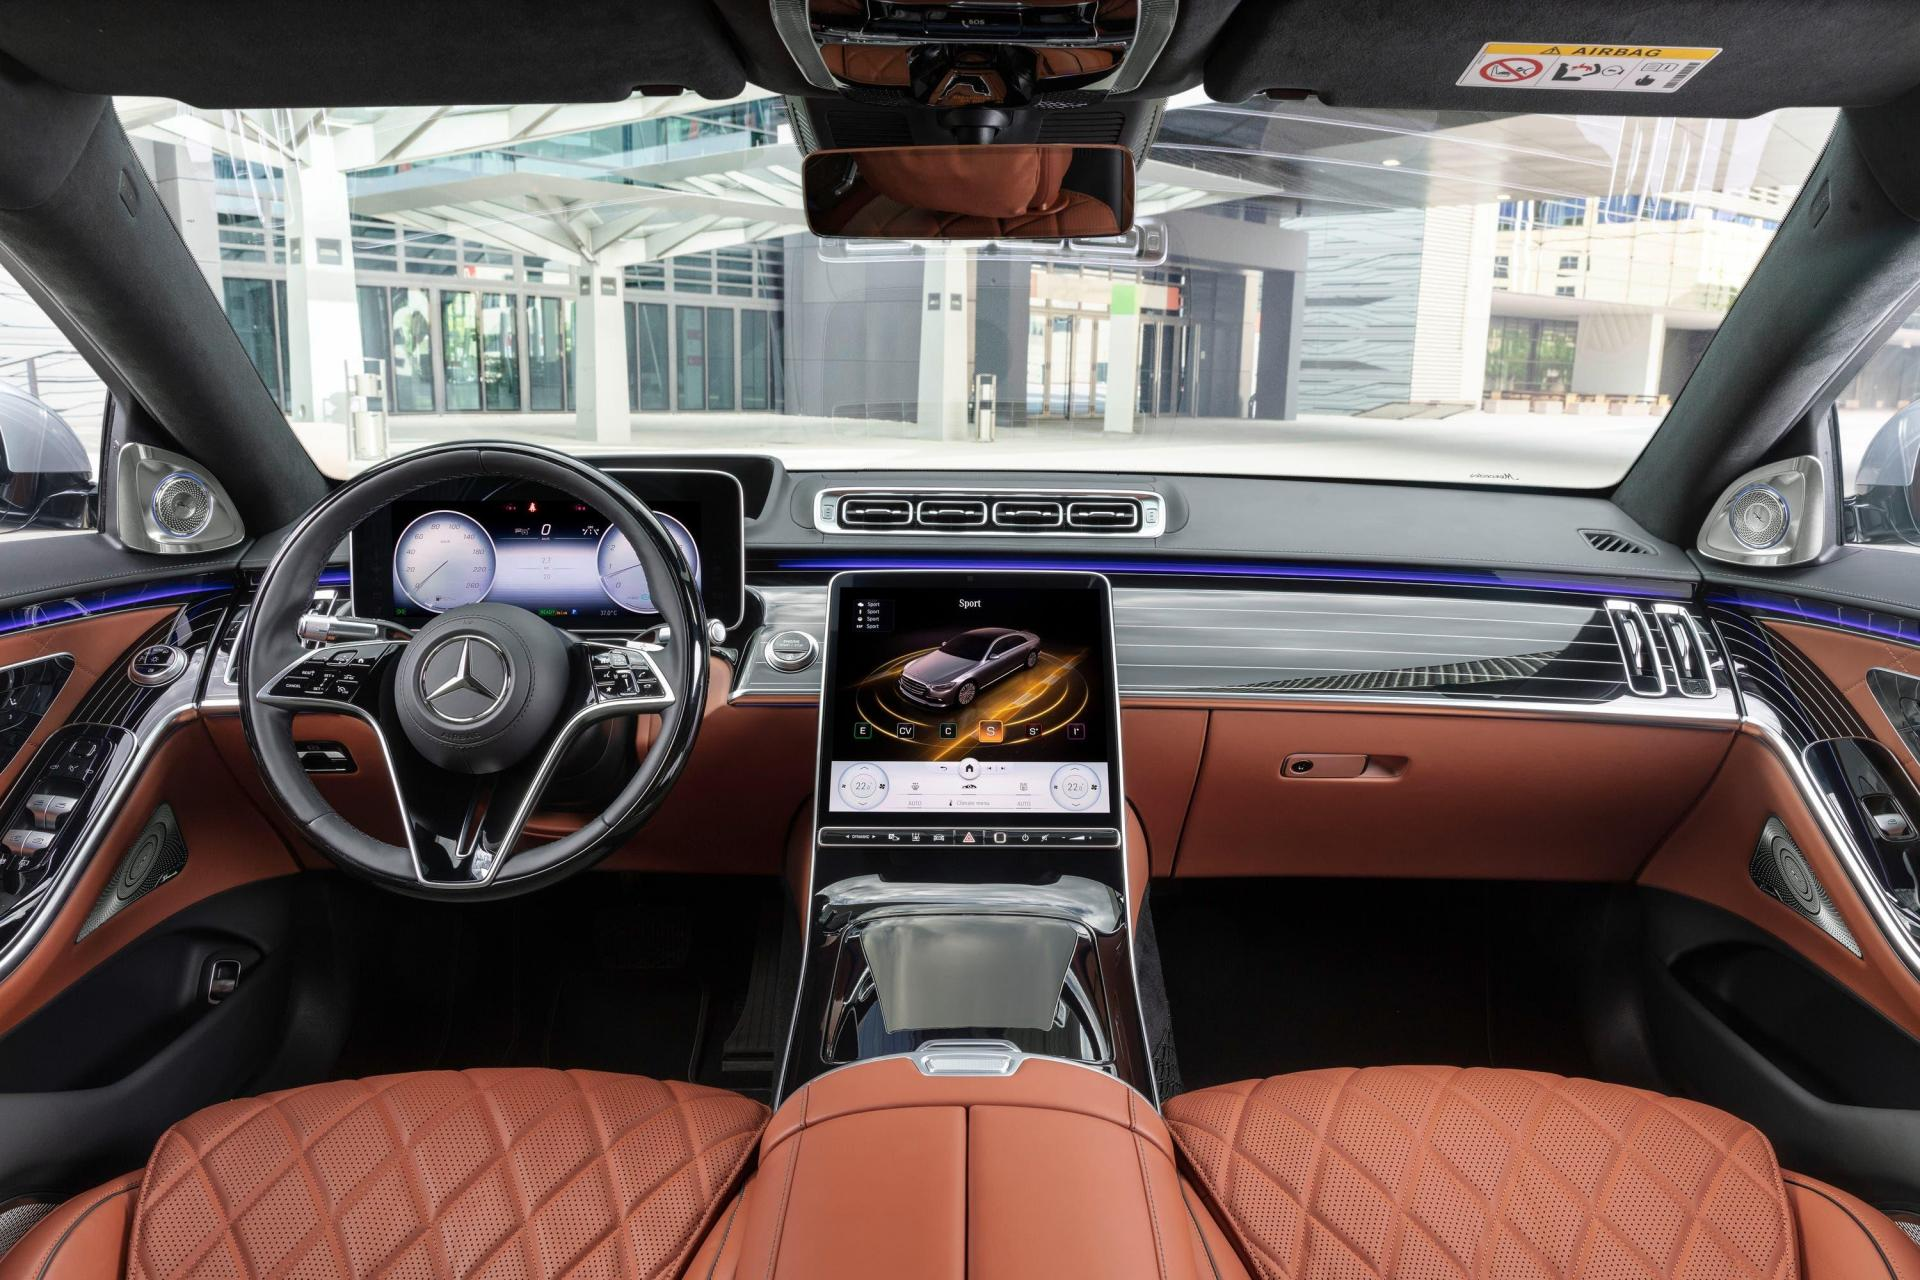 The S-Class interior features two widescreen displays.